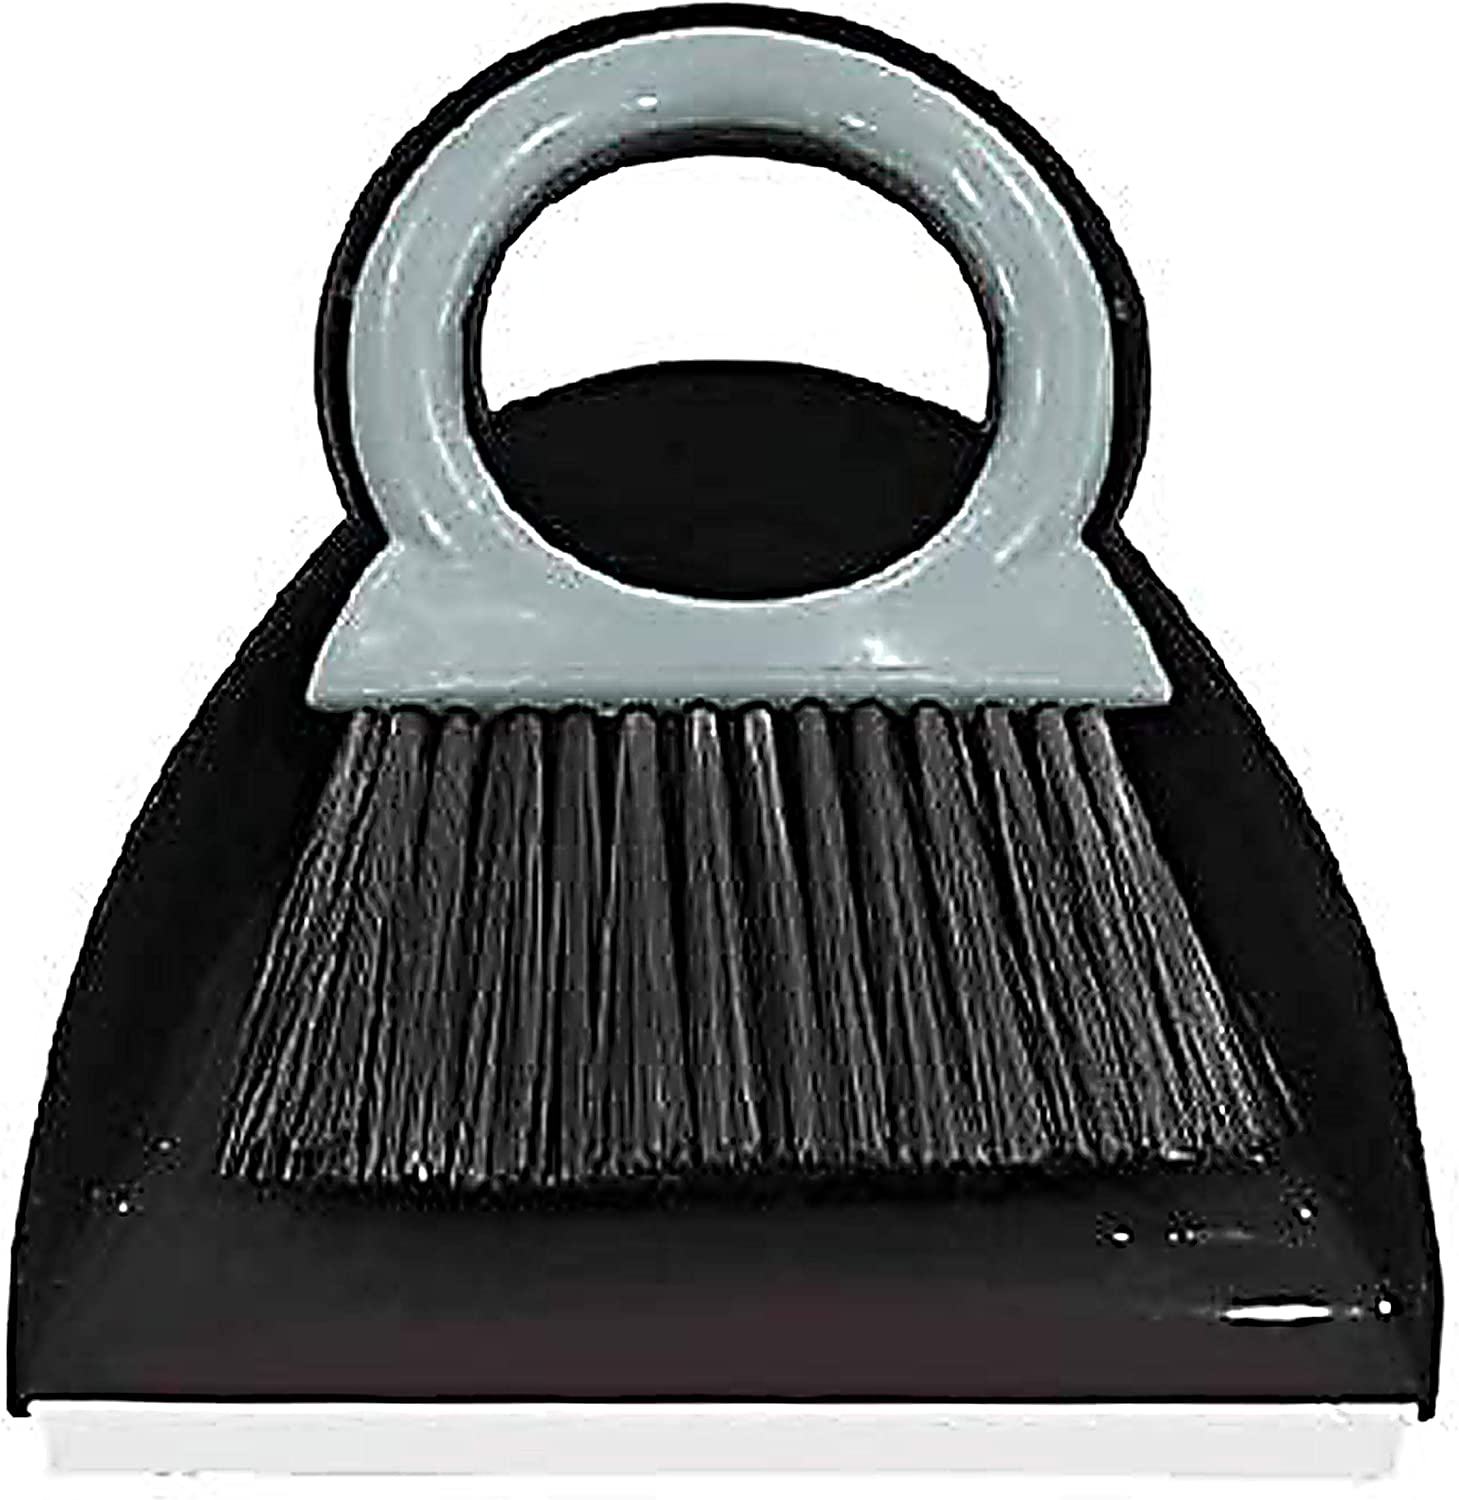 Clean Crumbs and Dirt of Tablecloths Desks and Dining Room Tables Comfortable Handle Shabbos Table Accessories by The Kosher Cook Mini Table Dustpan and Brush Strong Bristles